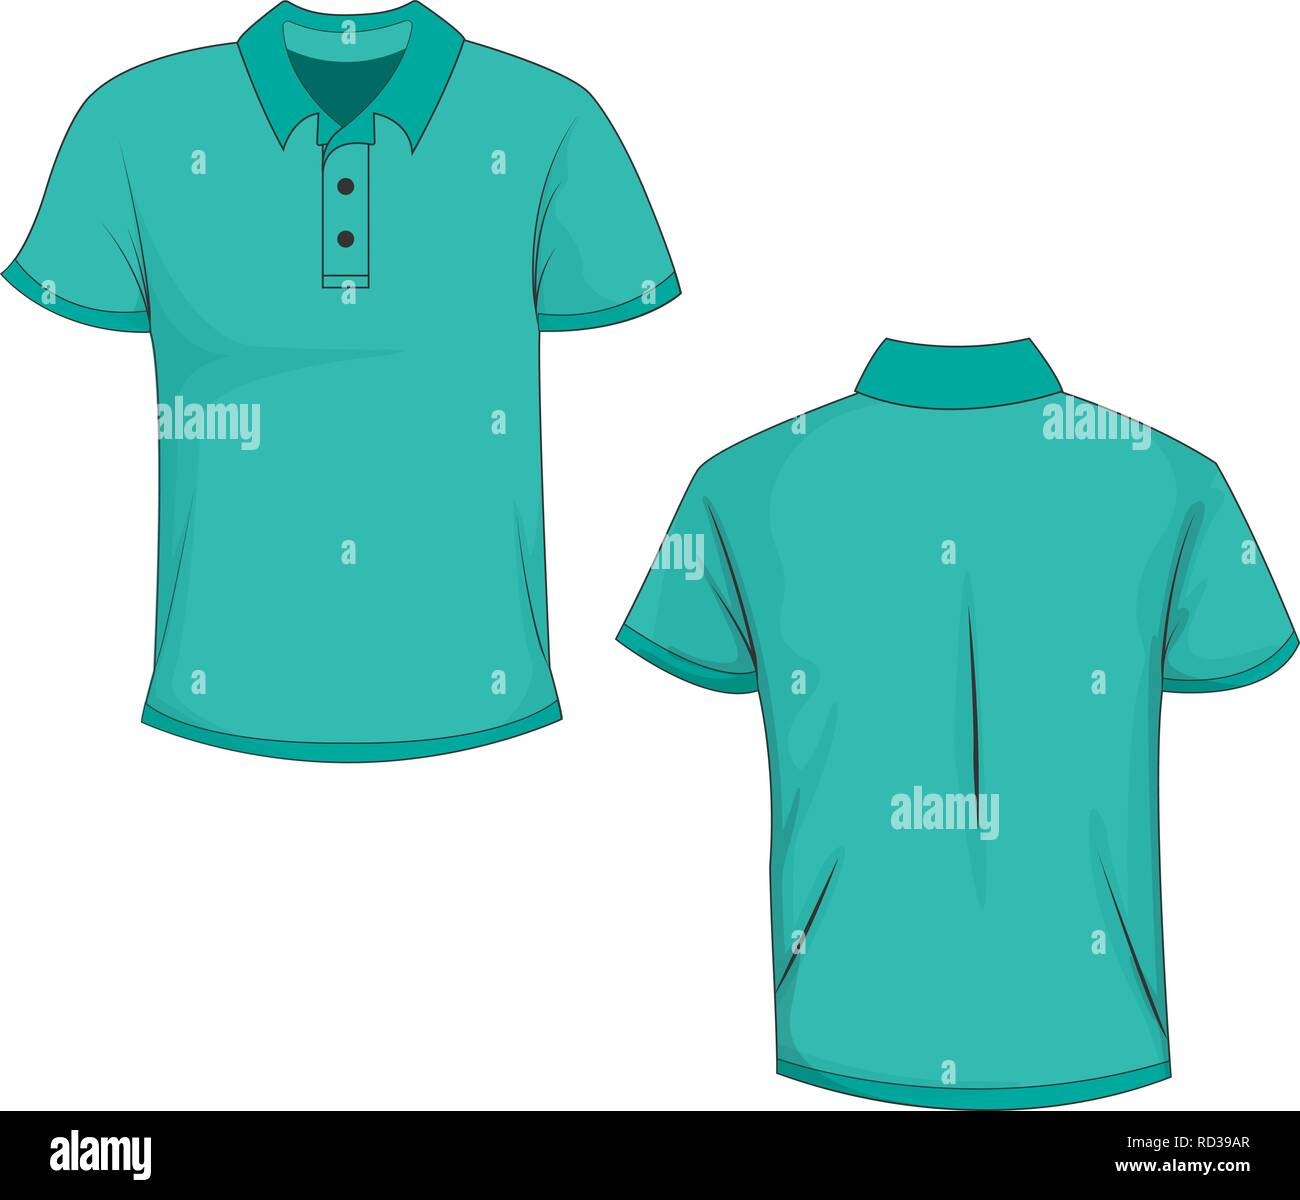 7c58944c6 Front and back view of turquoise polo (t-shirt). Isolated on white